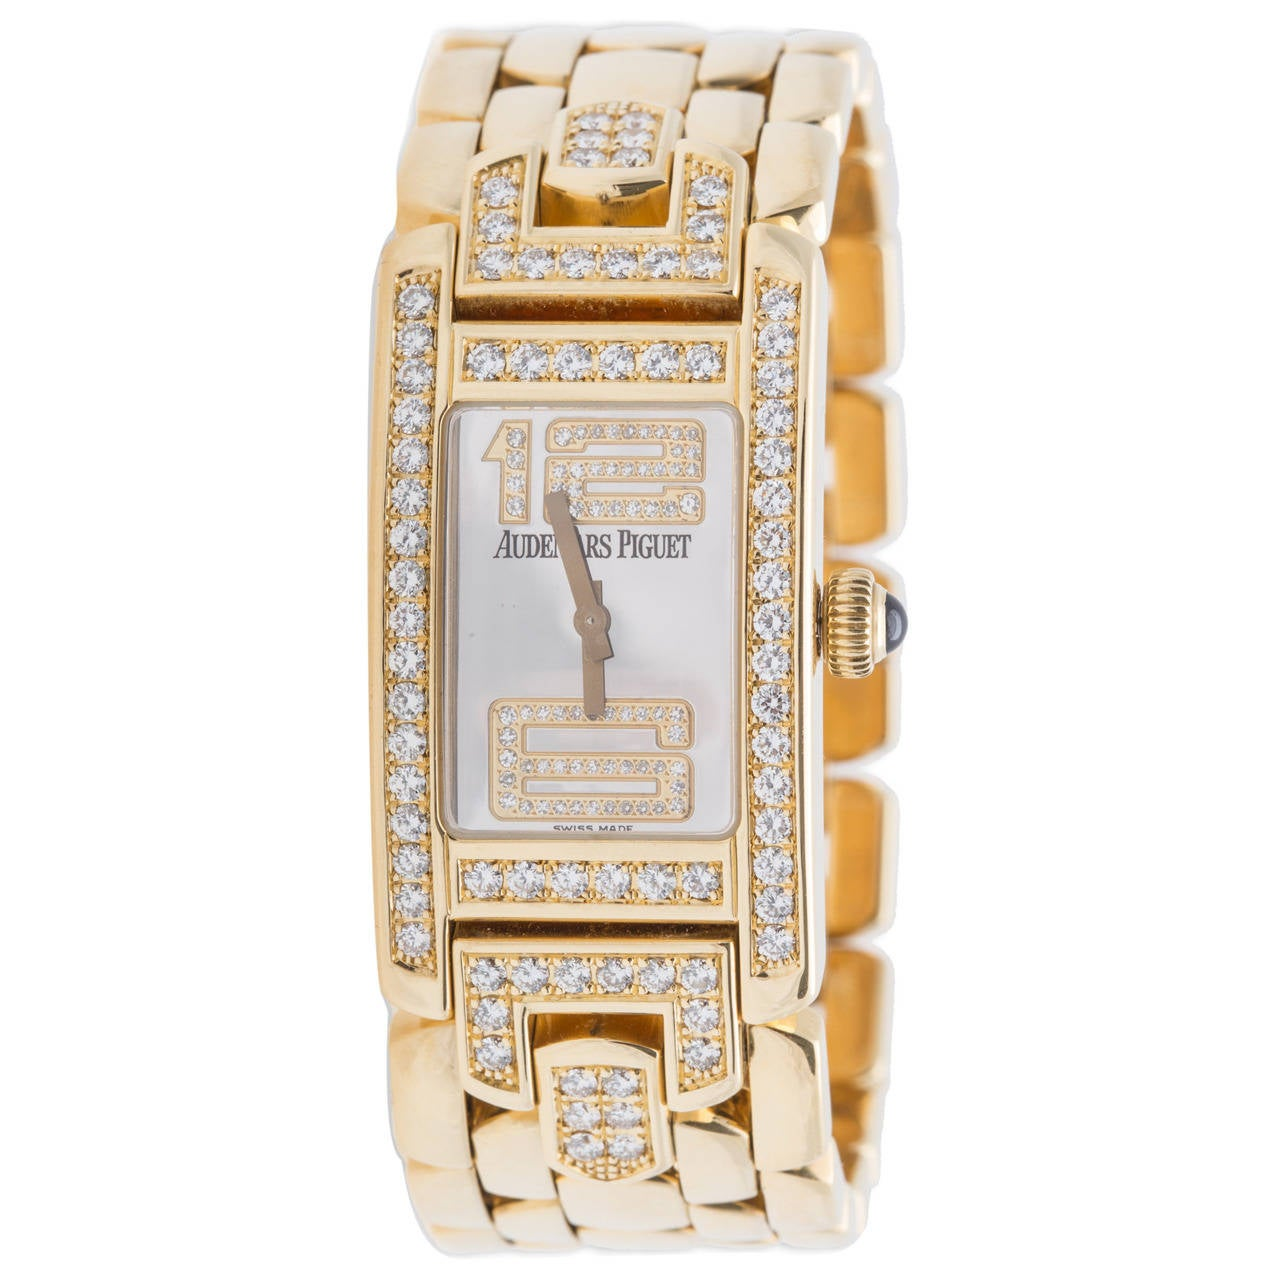 Audemars Piguet Ladies Yellow Gold and Diamond Promesse Quartz Wristwatch 1